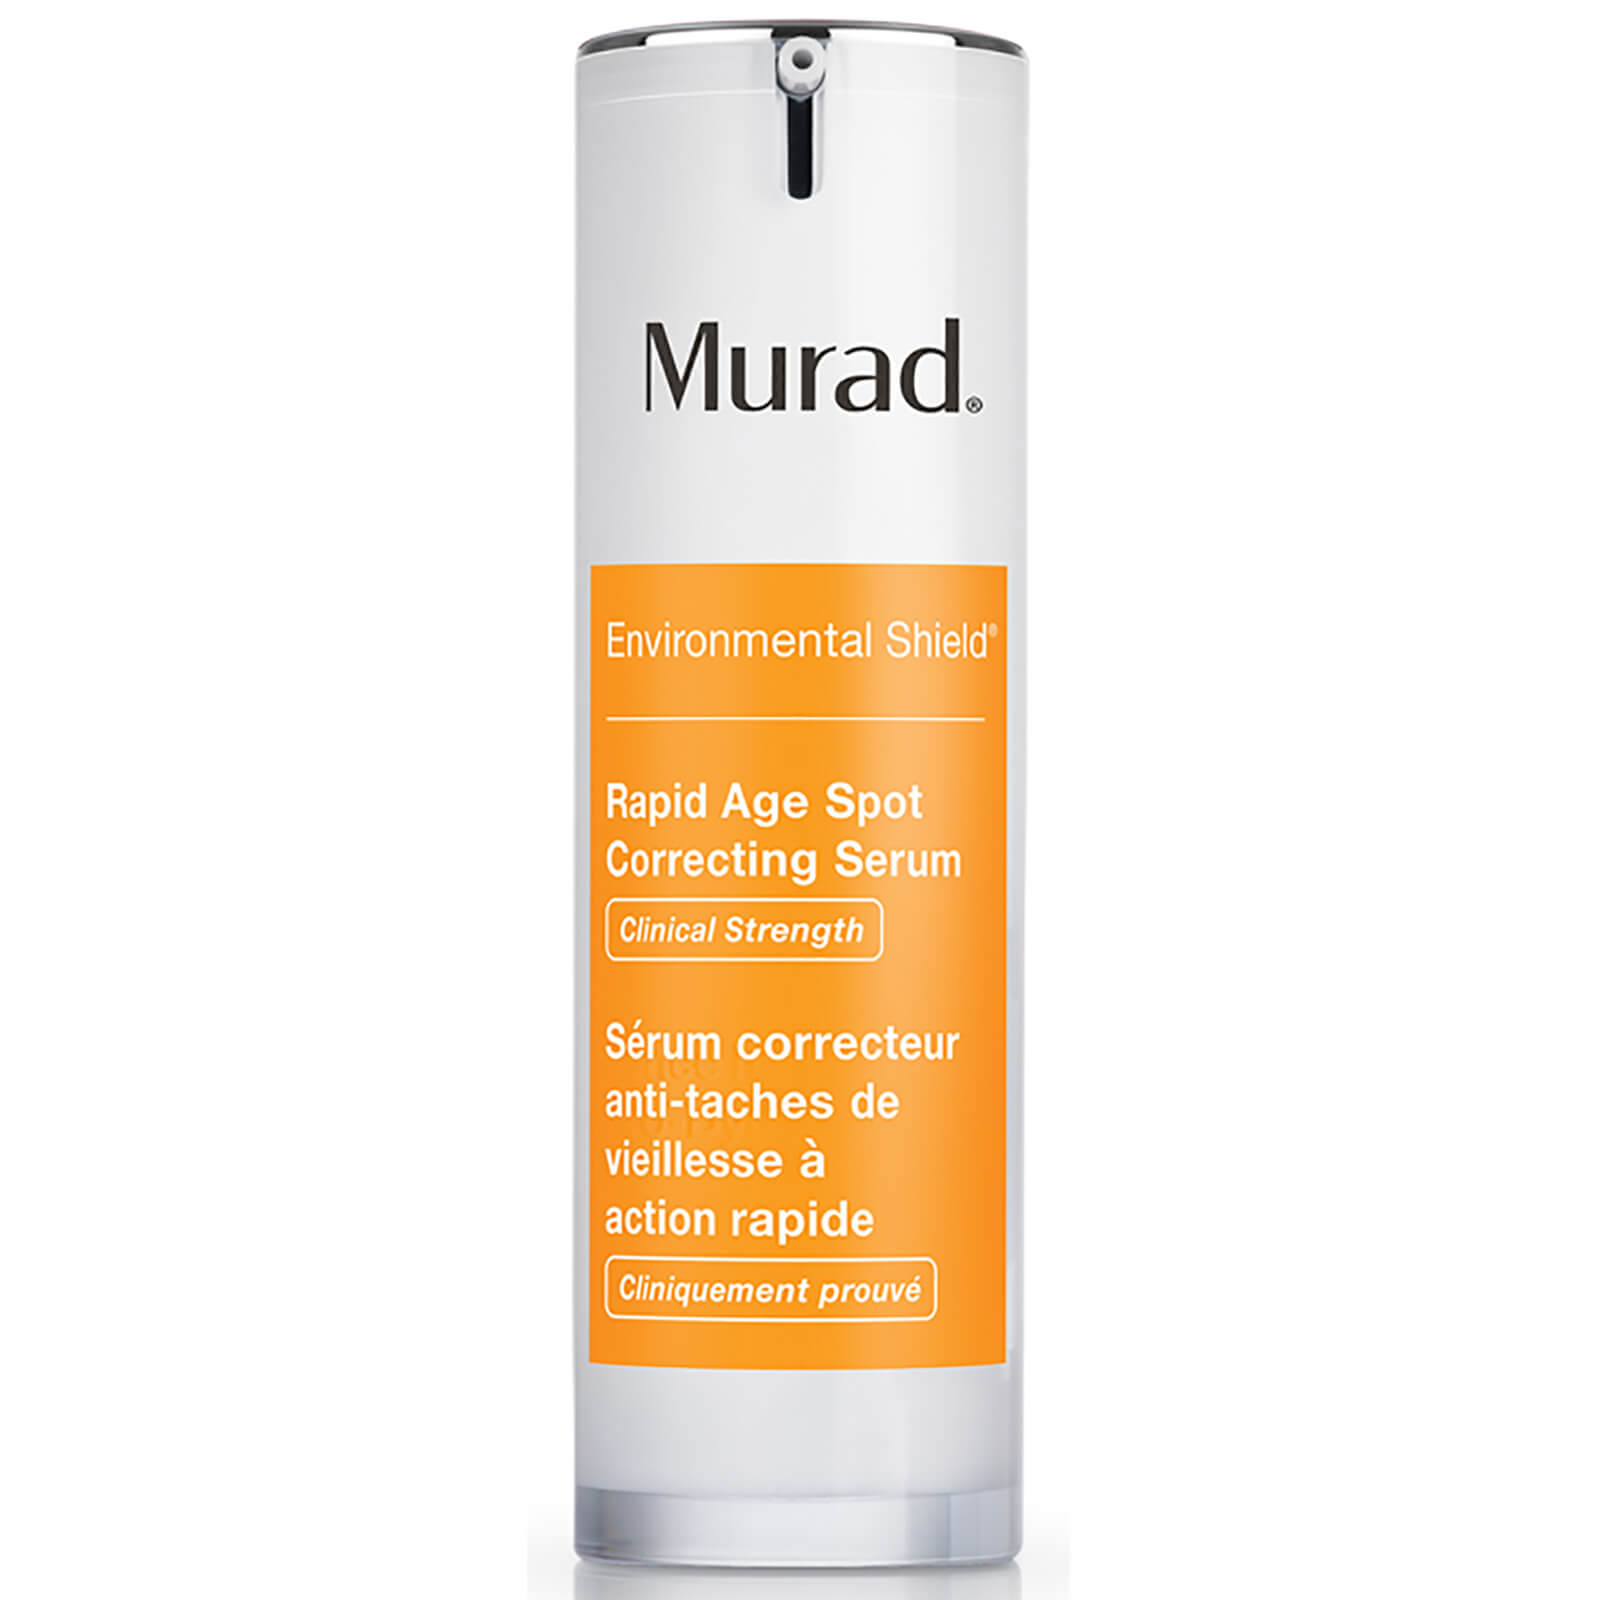 Murad Rapid Age Spot Correcting Serum, 30ml, £75.00